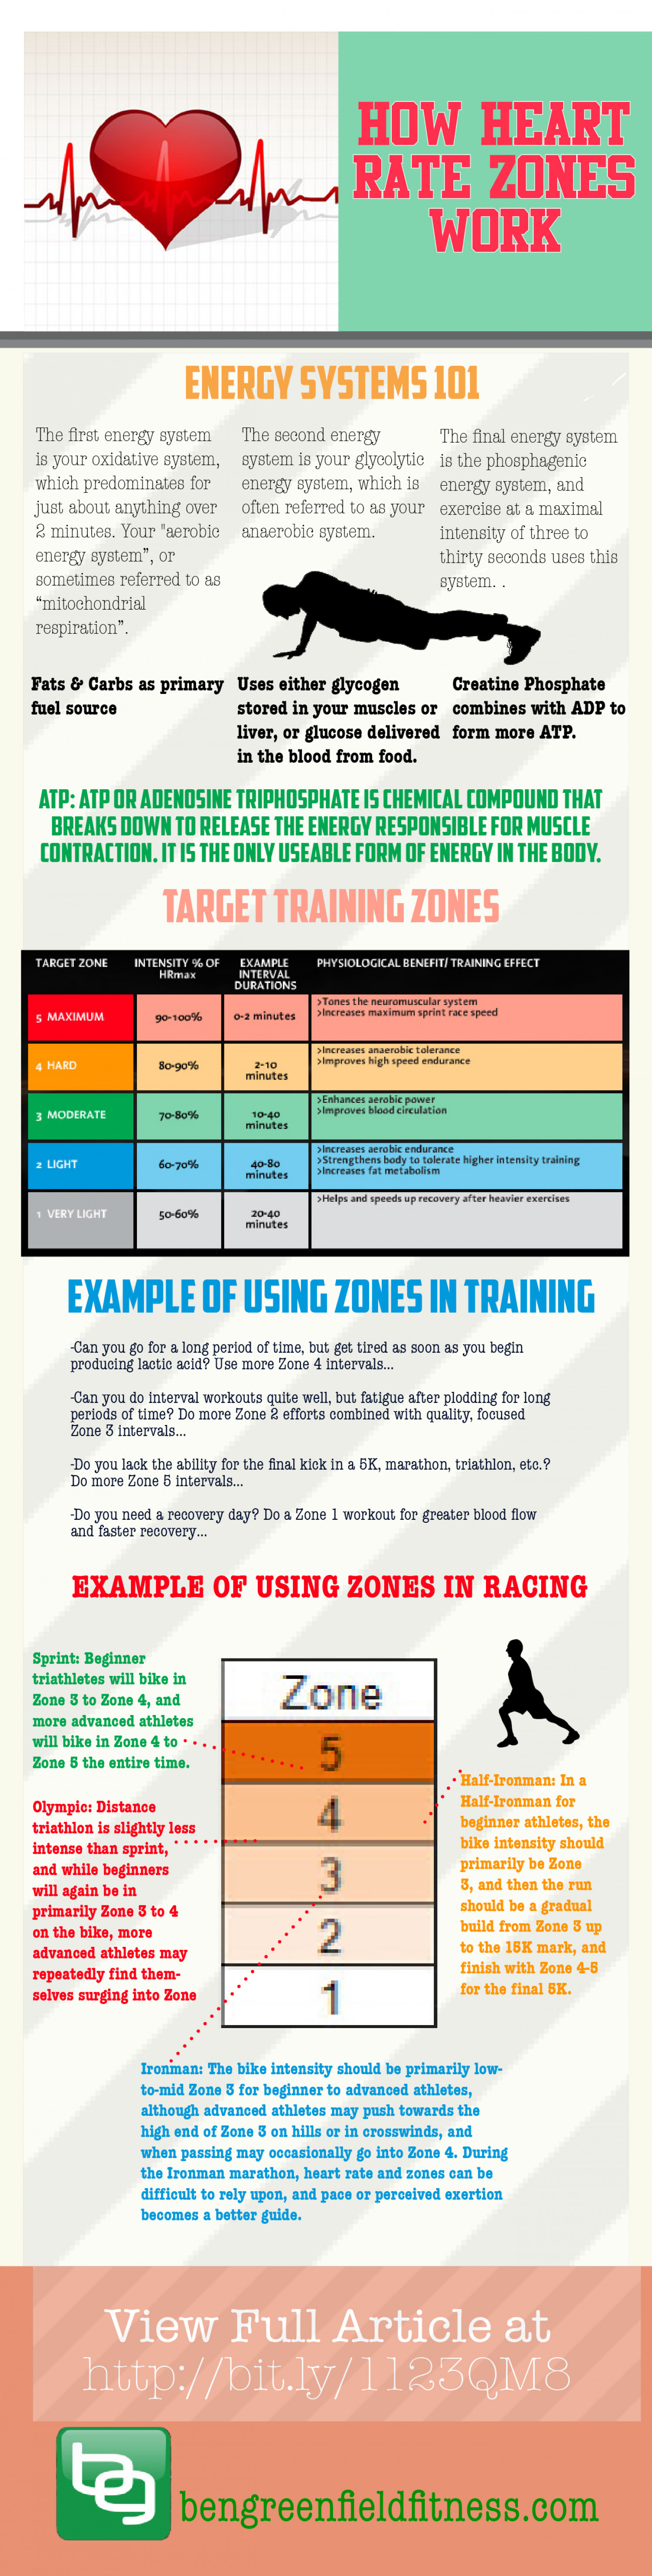 How Heart Rate Zones Work Infographic